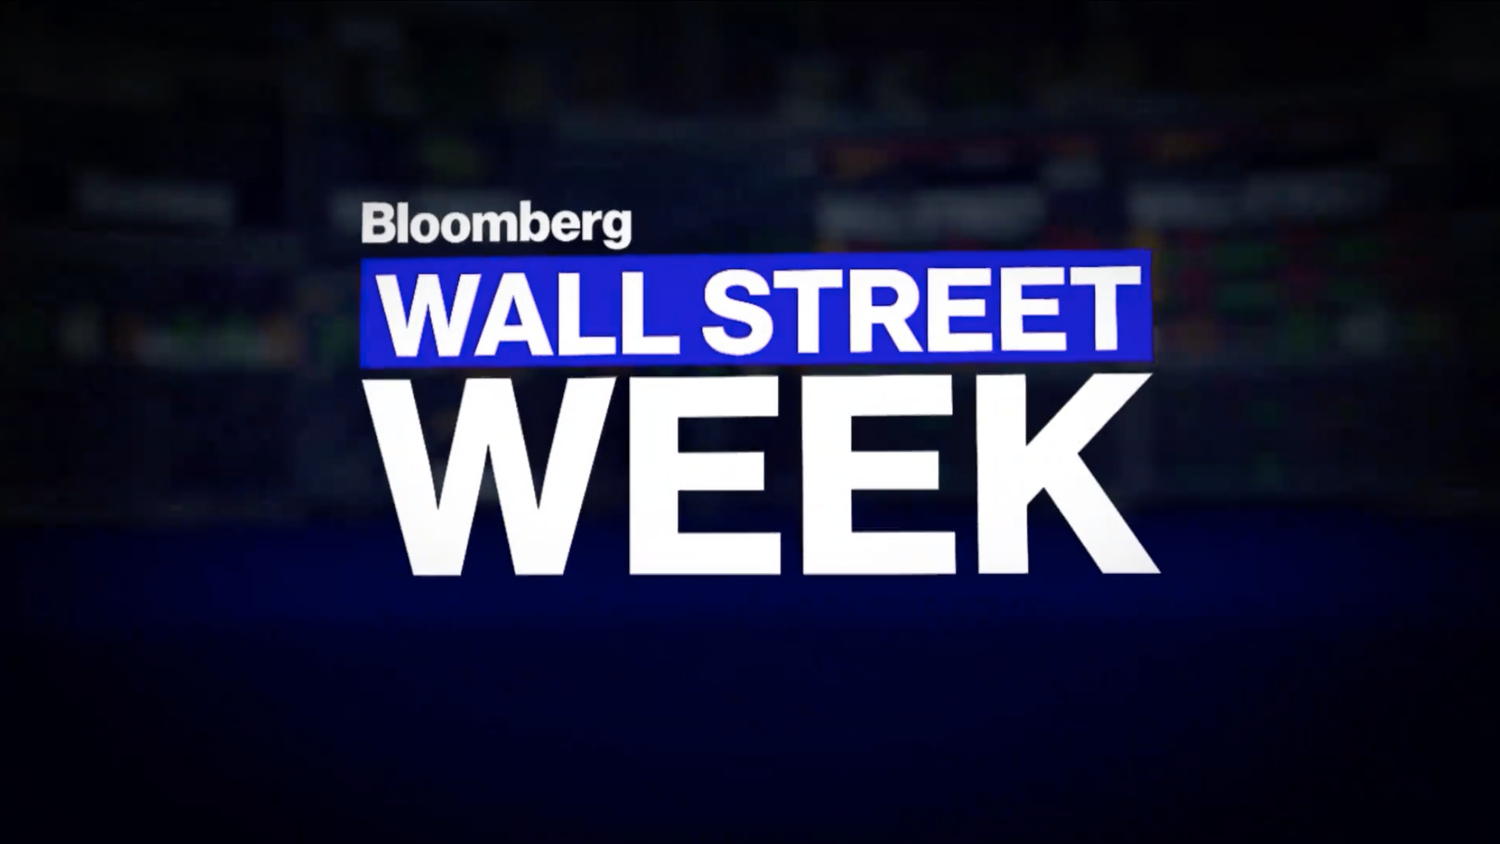 ncs_Bloomberg-Wall-Street-Week-Graphics_0019